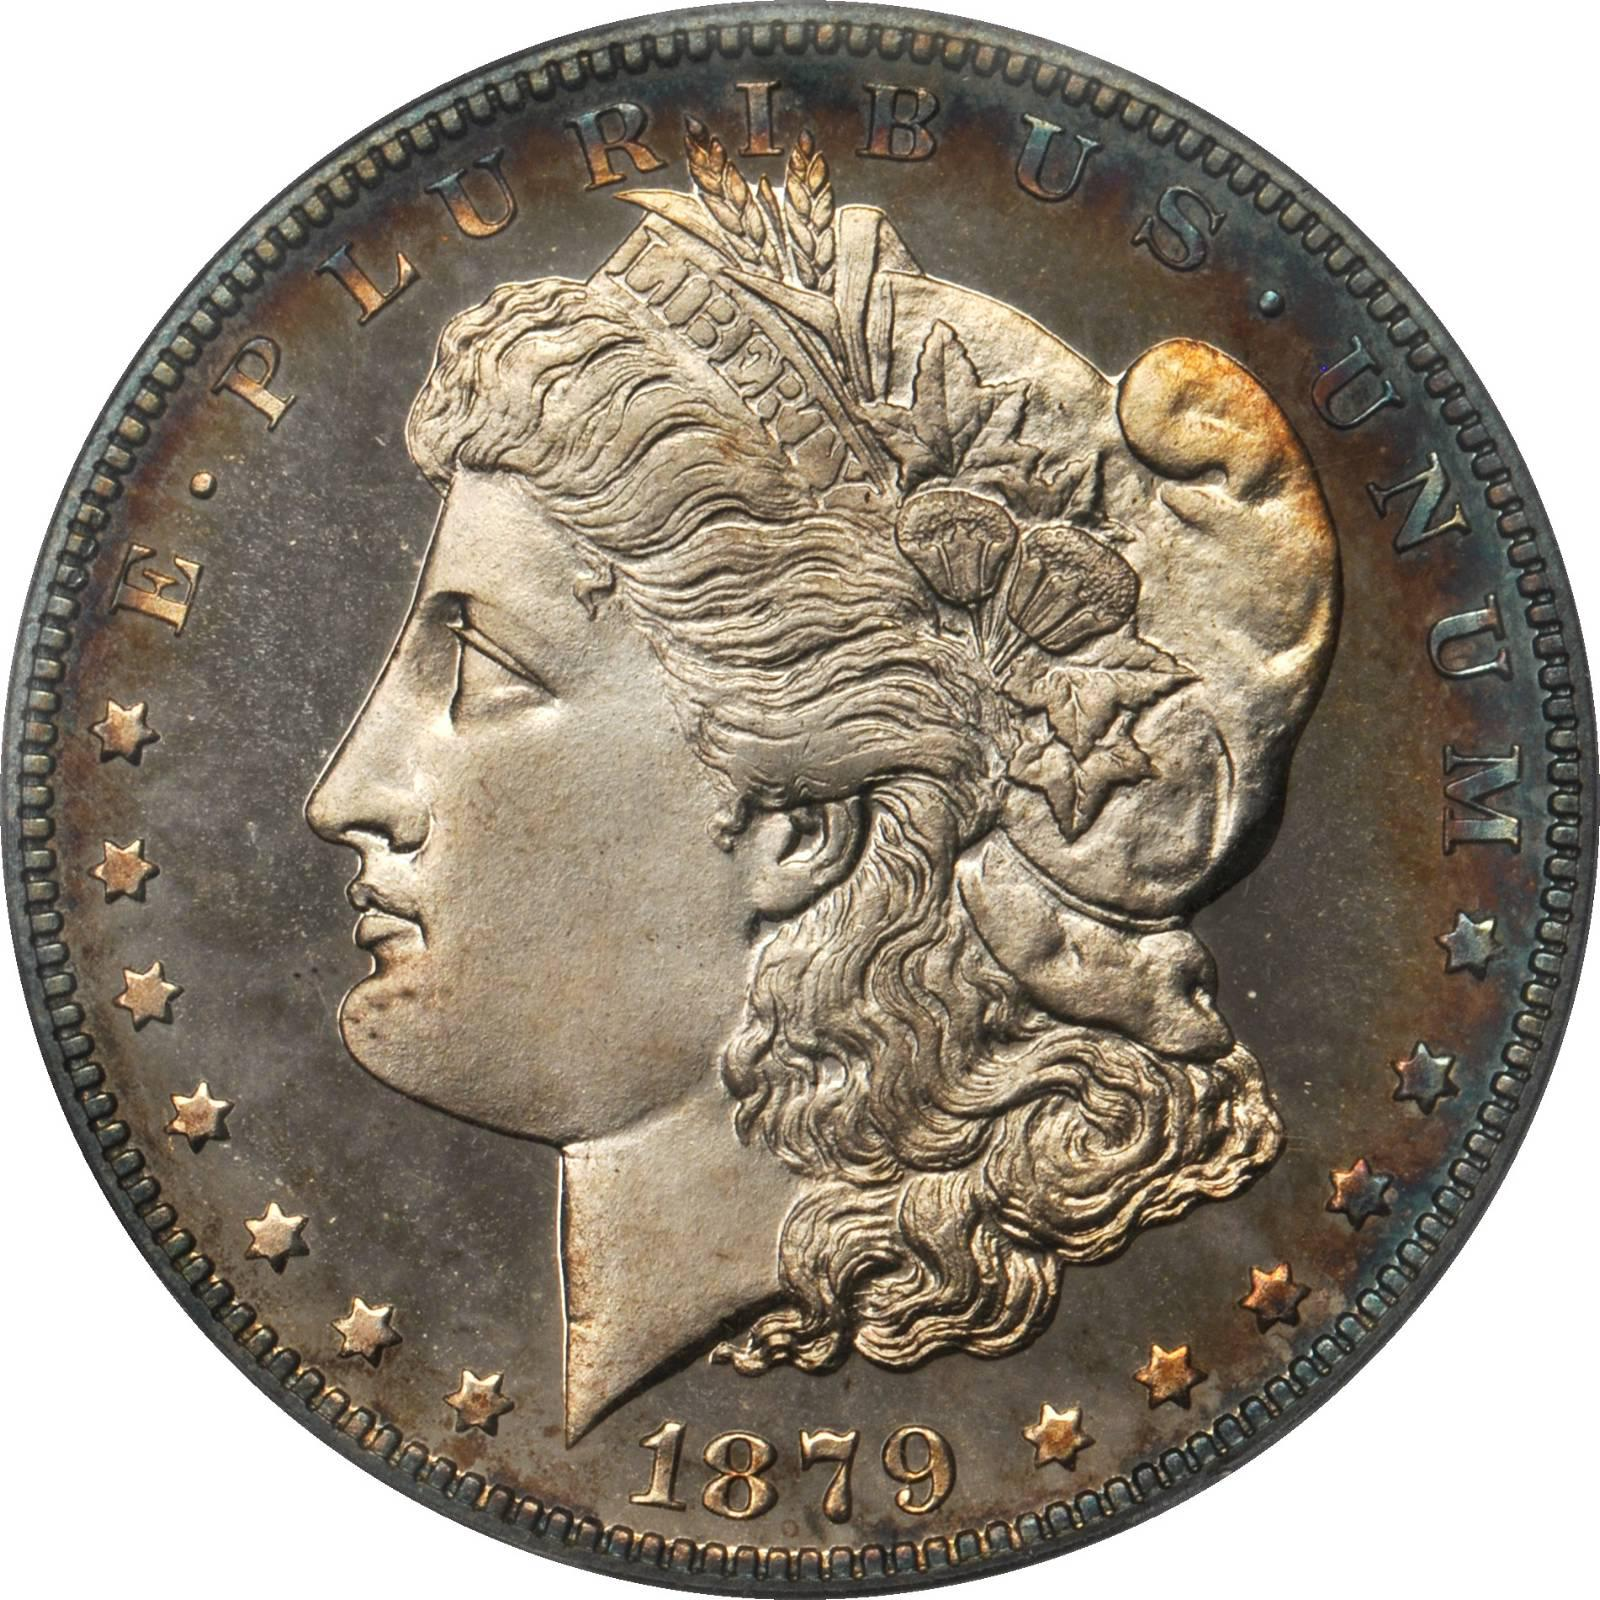 Value Of 1879 Morgan Dollar Rare Silver Dollar Buyers